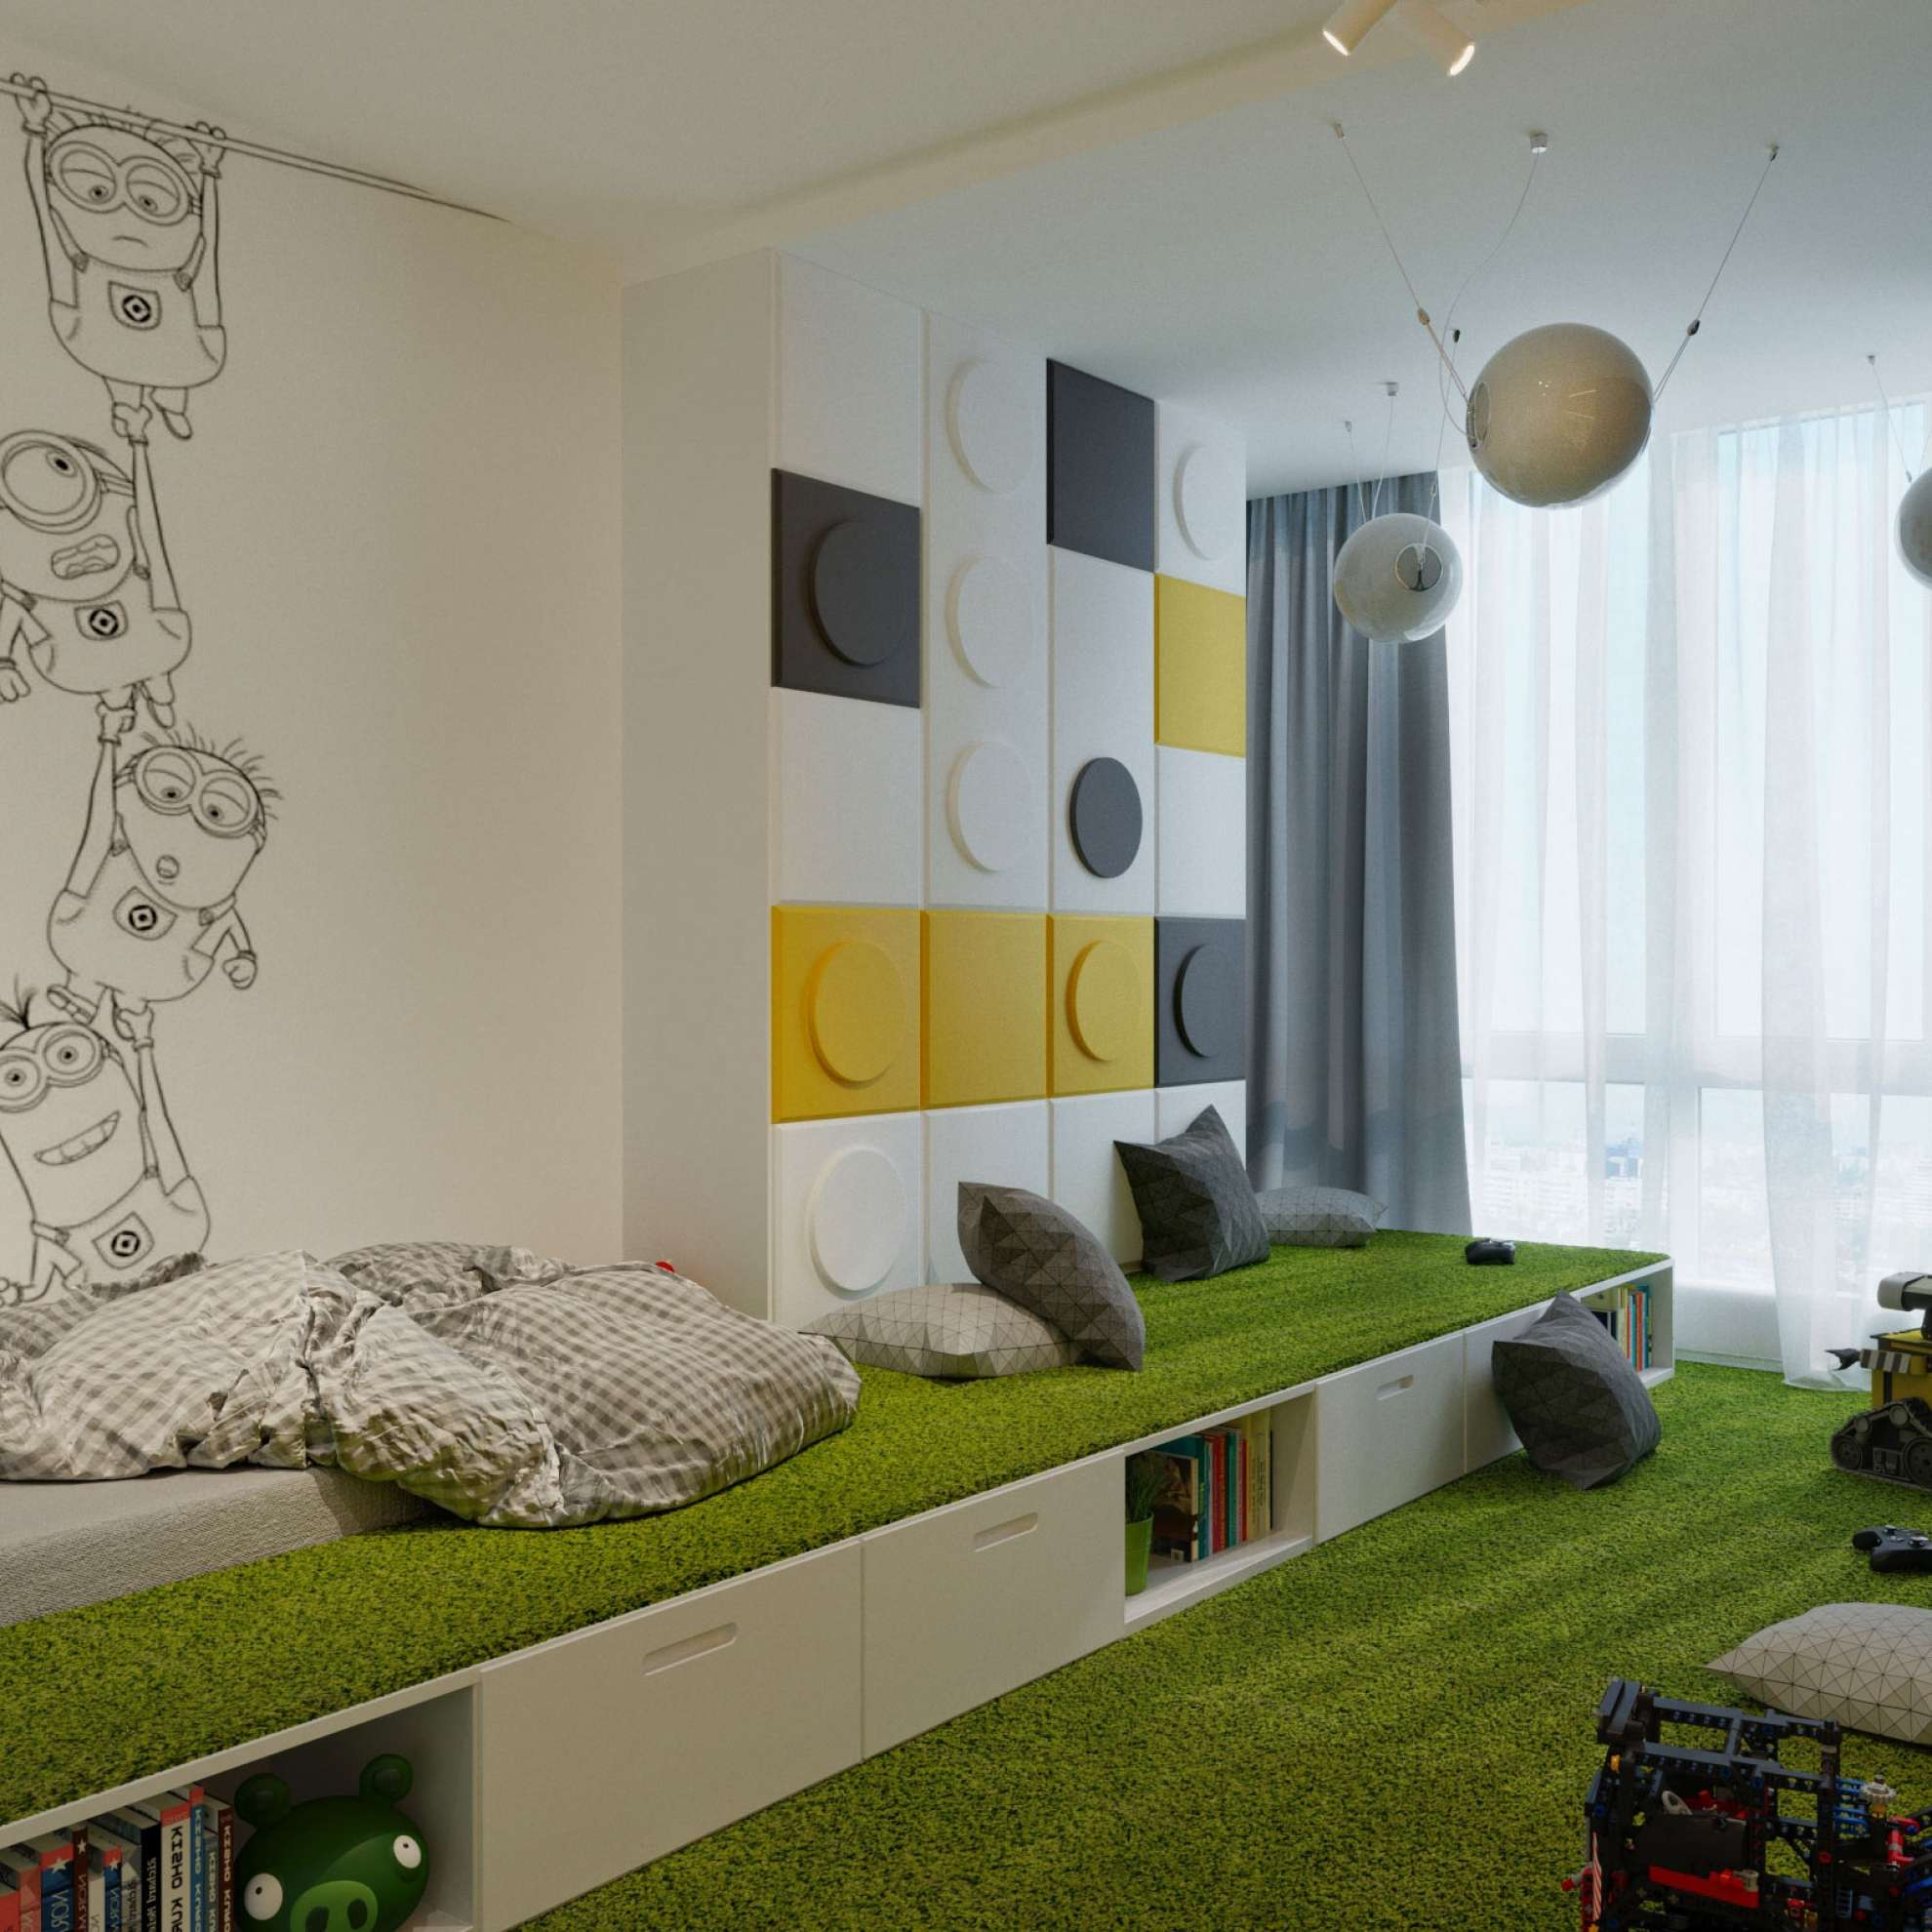 designofachildren'sroom.jpg